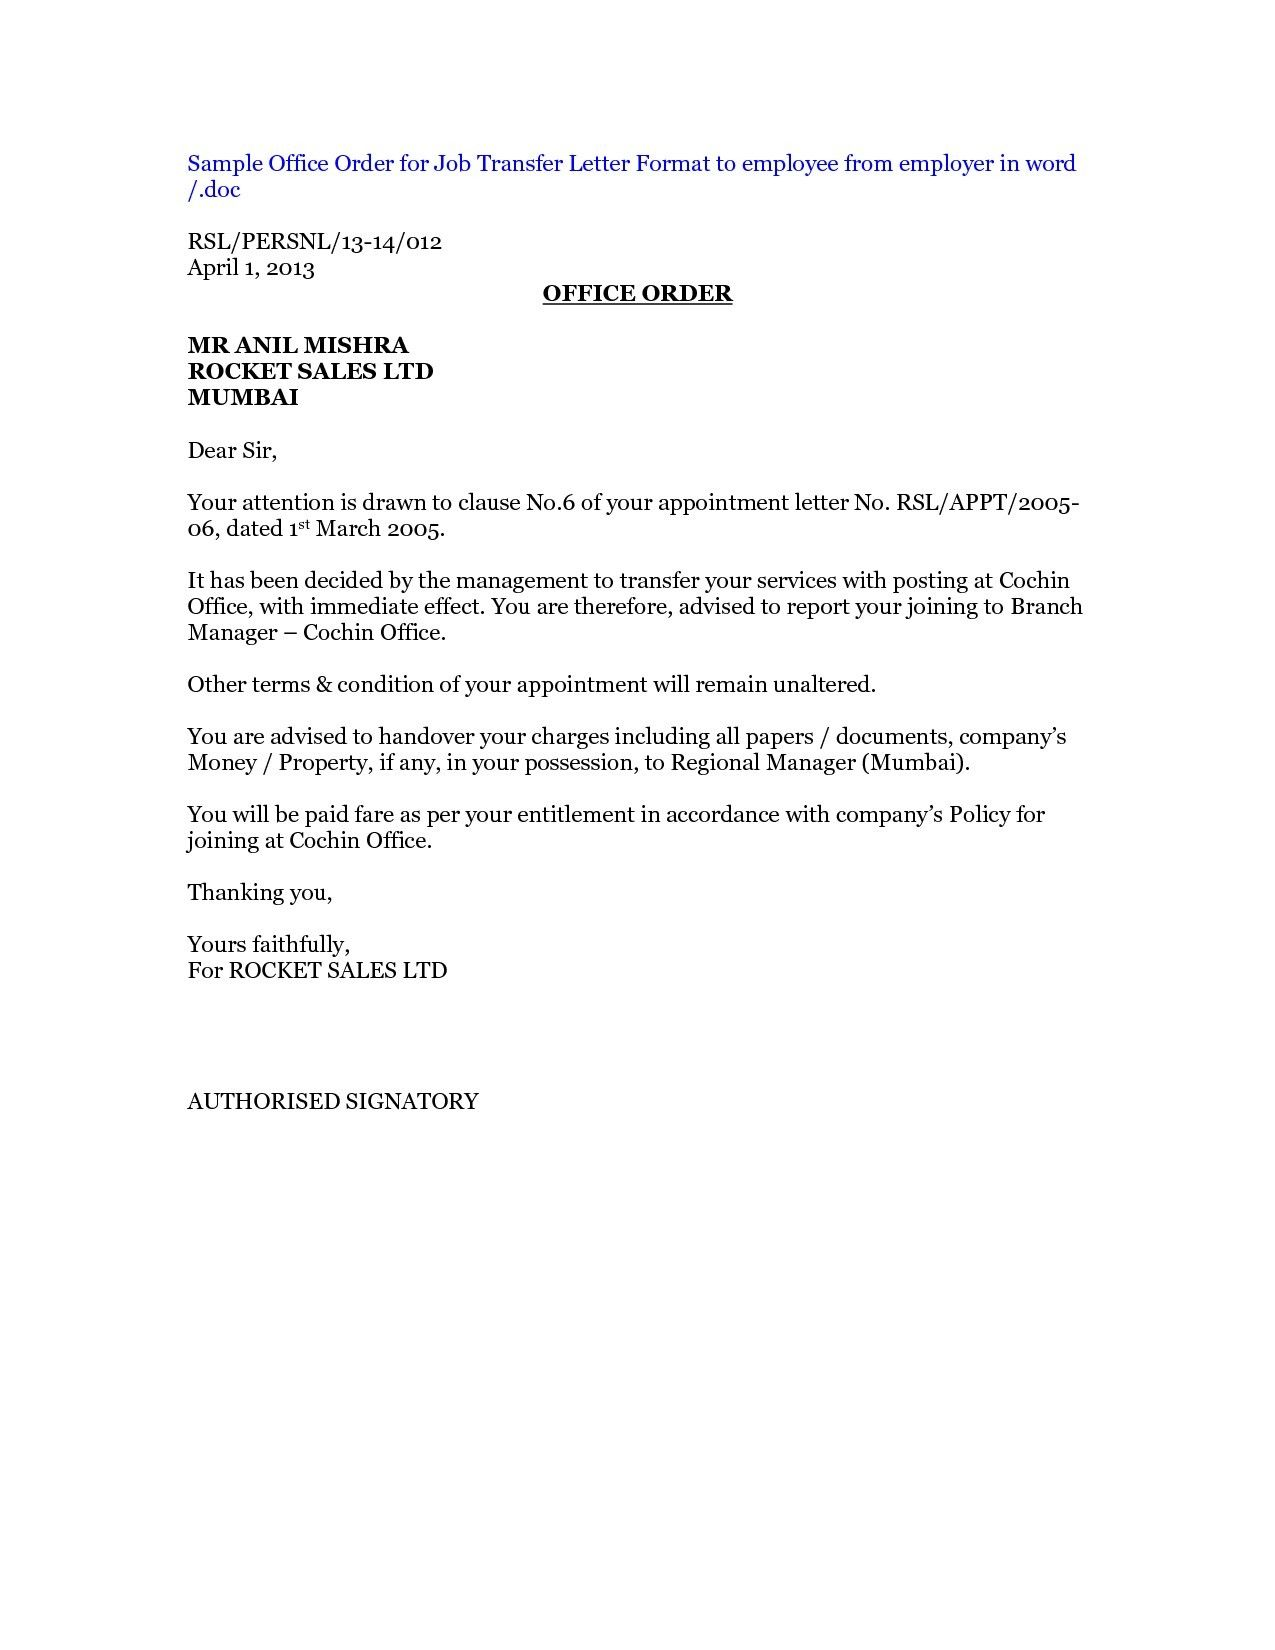 New Letter Of Intent to Transfer Job you can download for